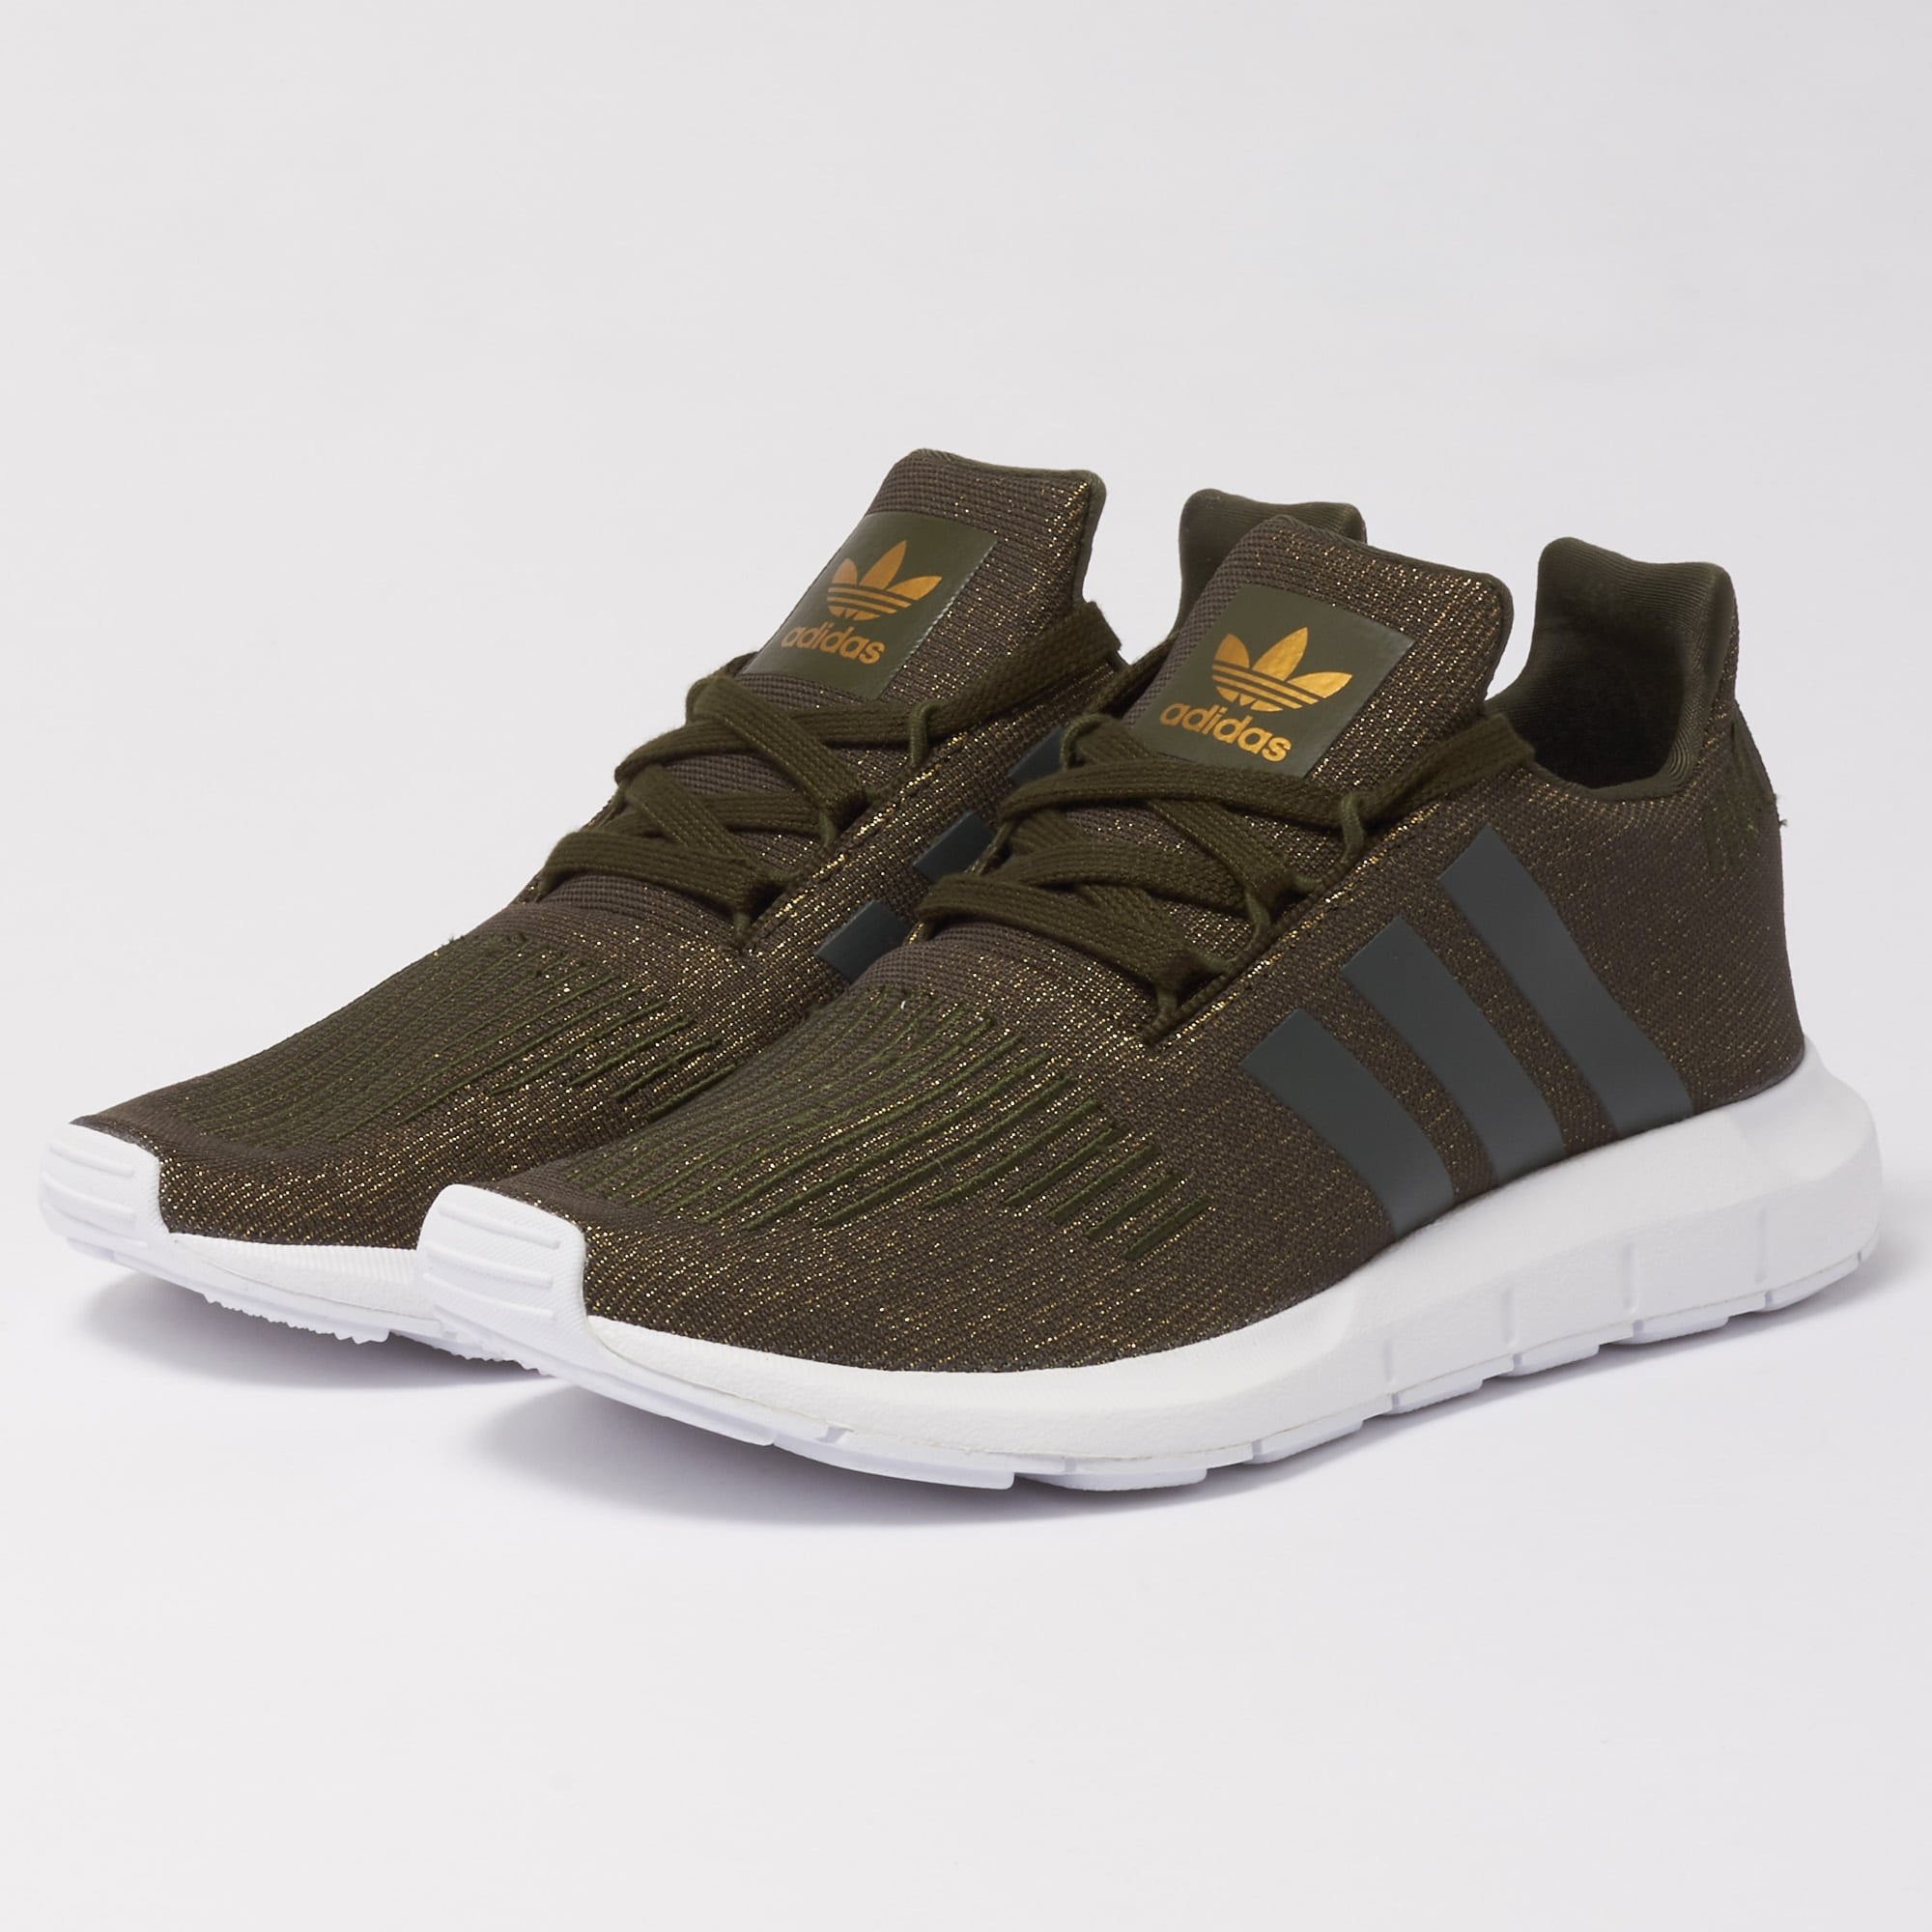 pretty cheap shop limited guantity adidas Originals Womens Swift Run Trainers - Night Cargo